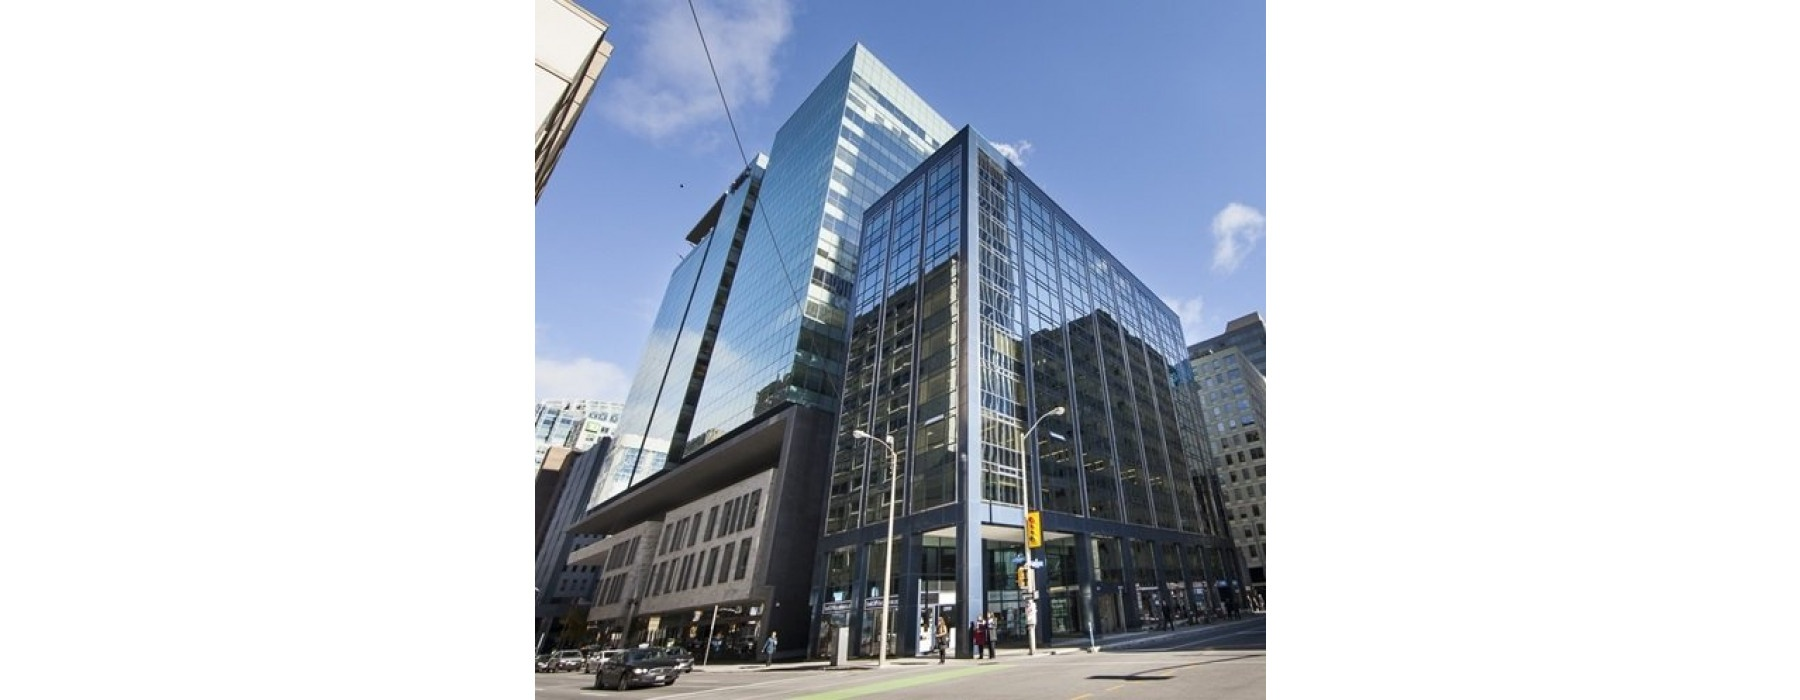 Ottawa - Laurier Ave West - Business address